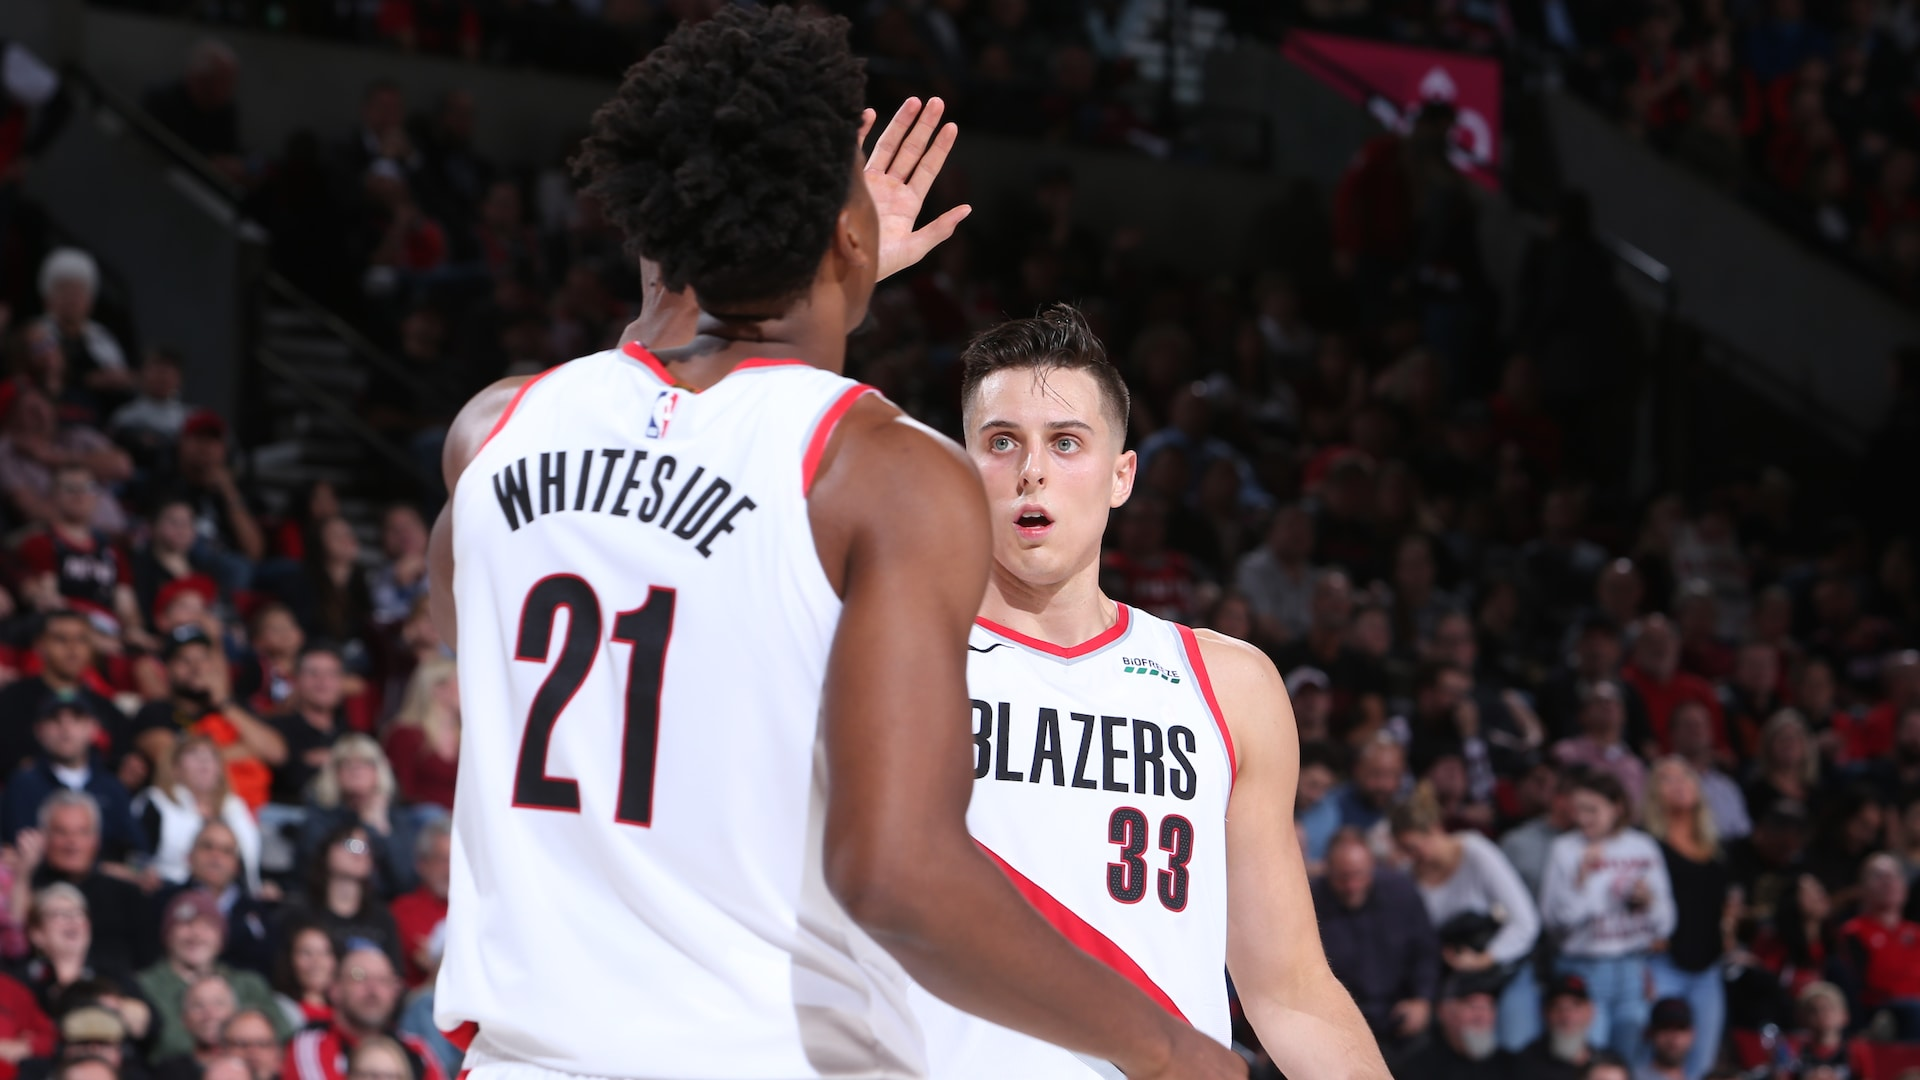 Healthier Blazers can't wait to get rolling in restart